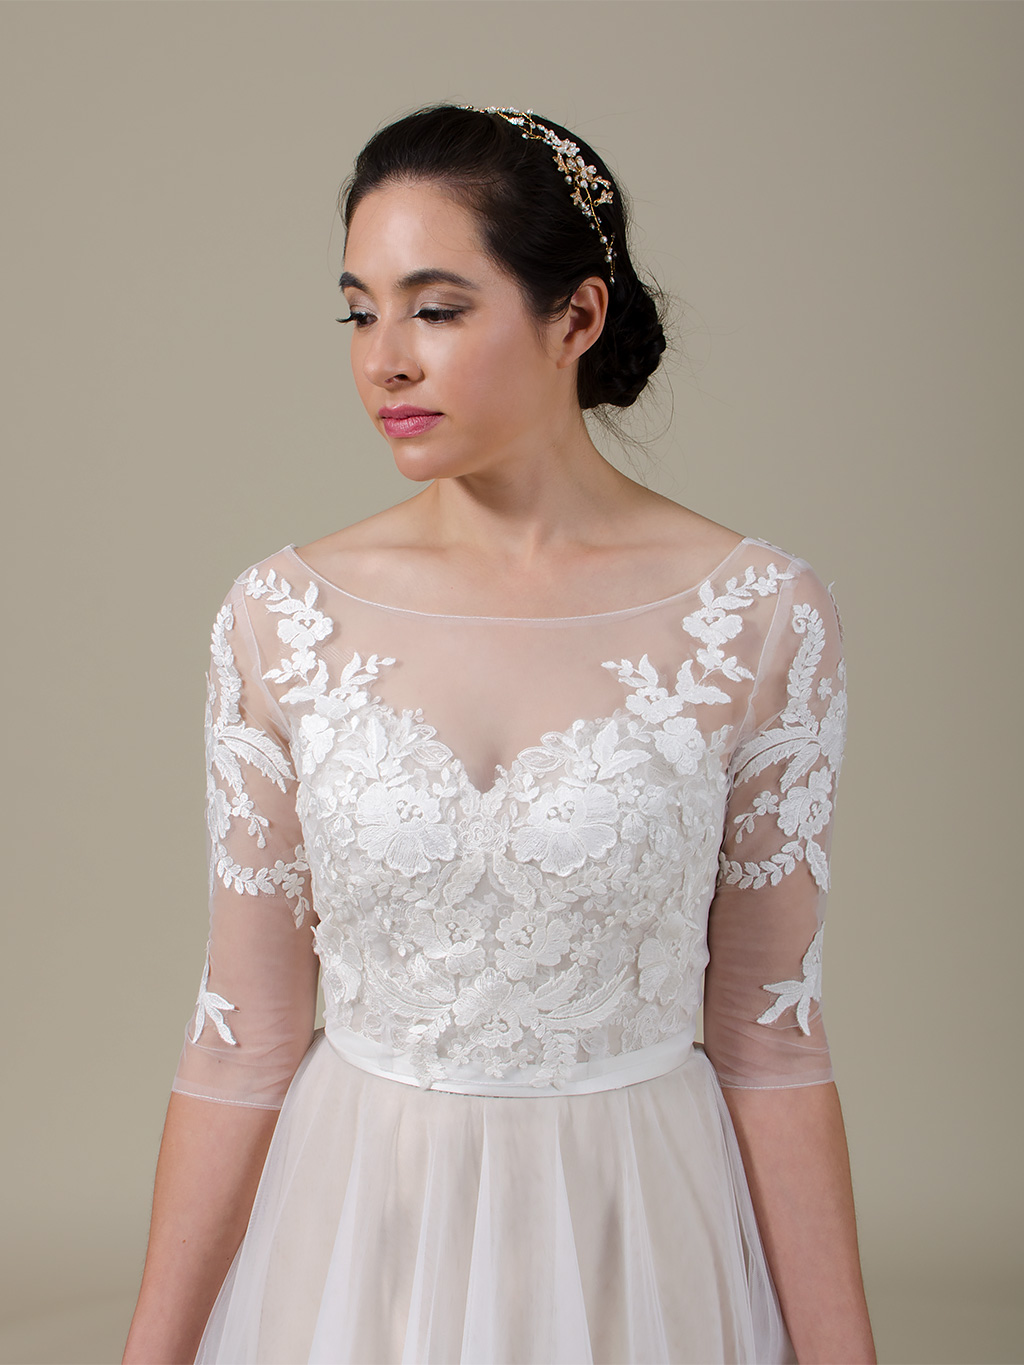 Boat neck lace bolero with V back 3/4 length wedding dress topper WJ039